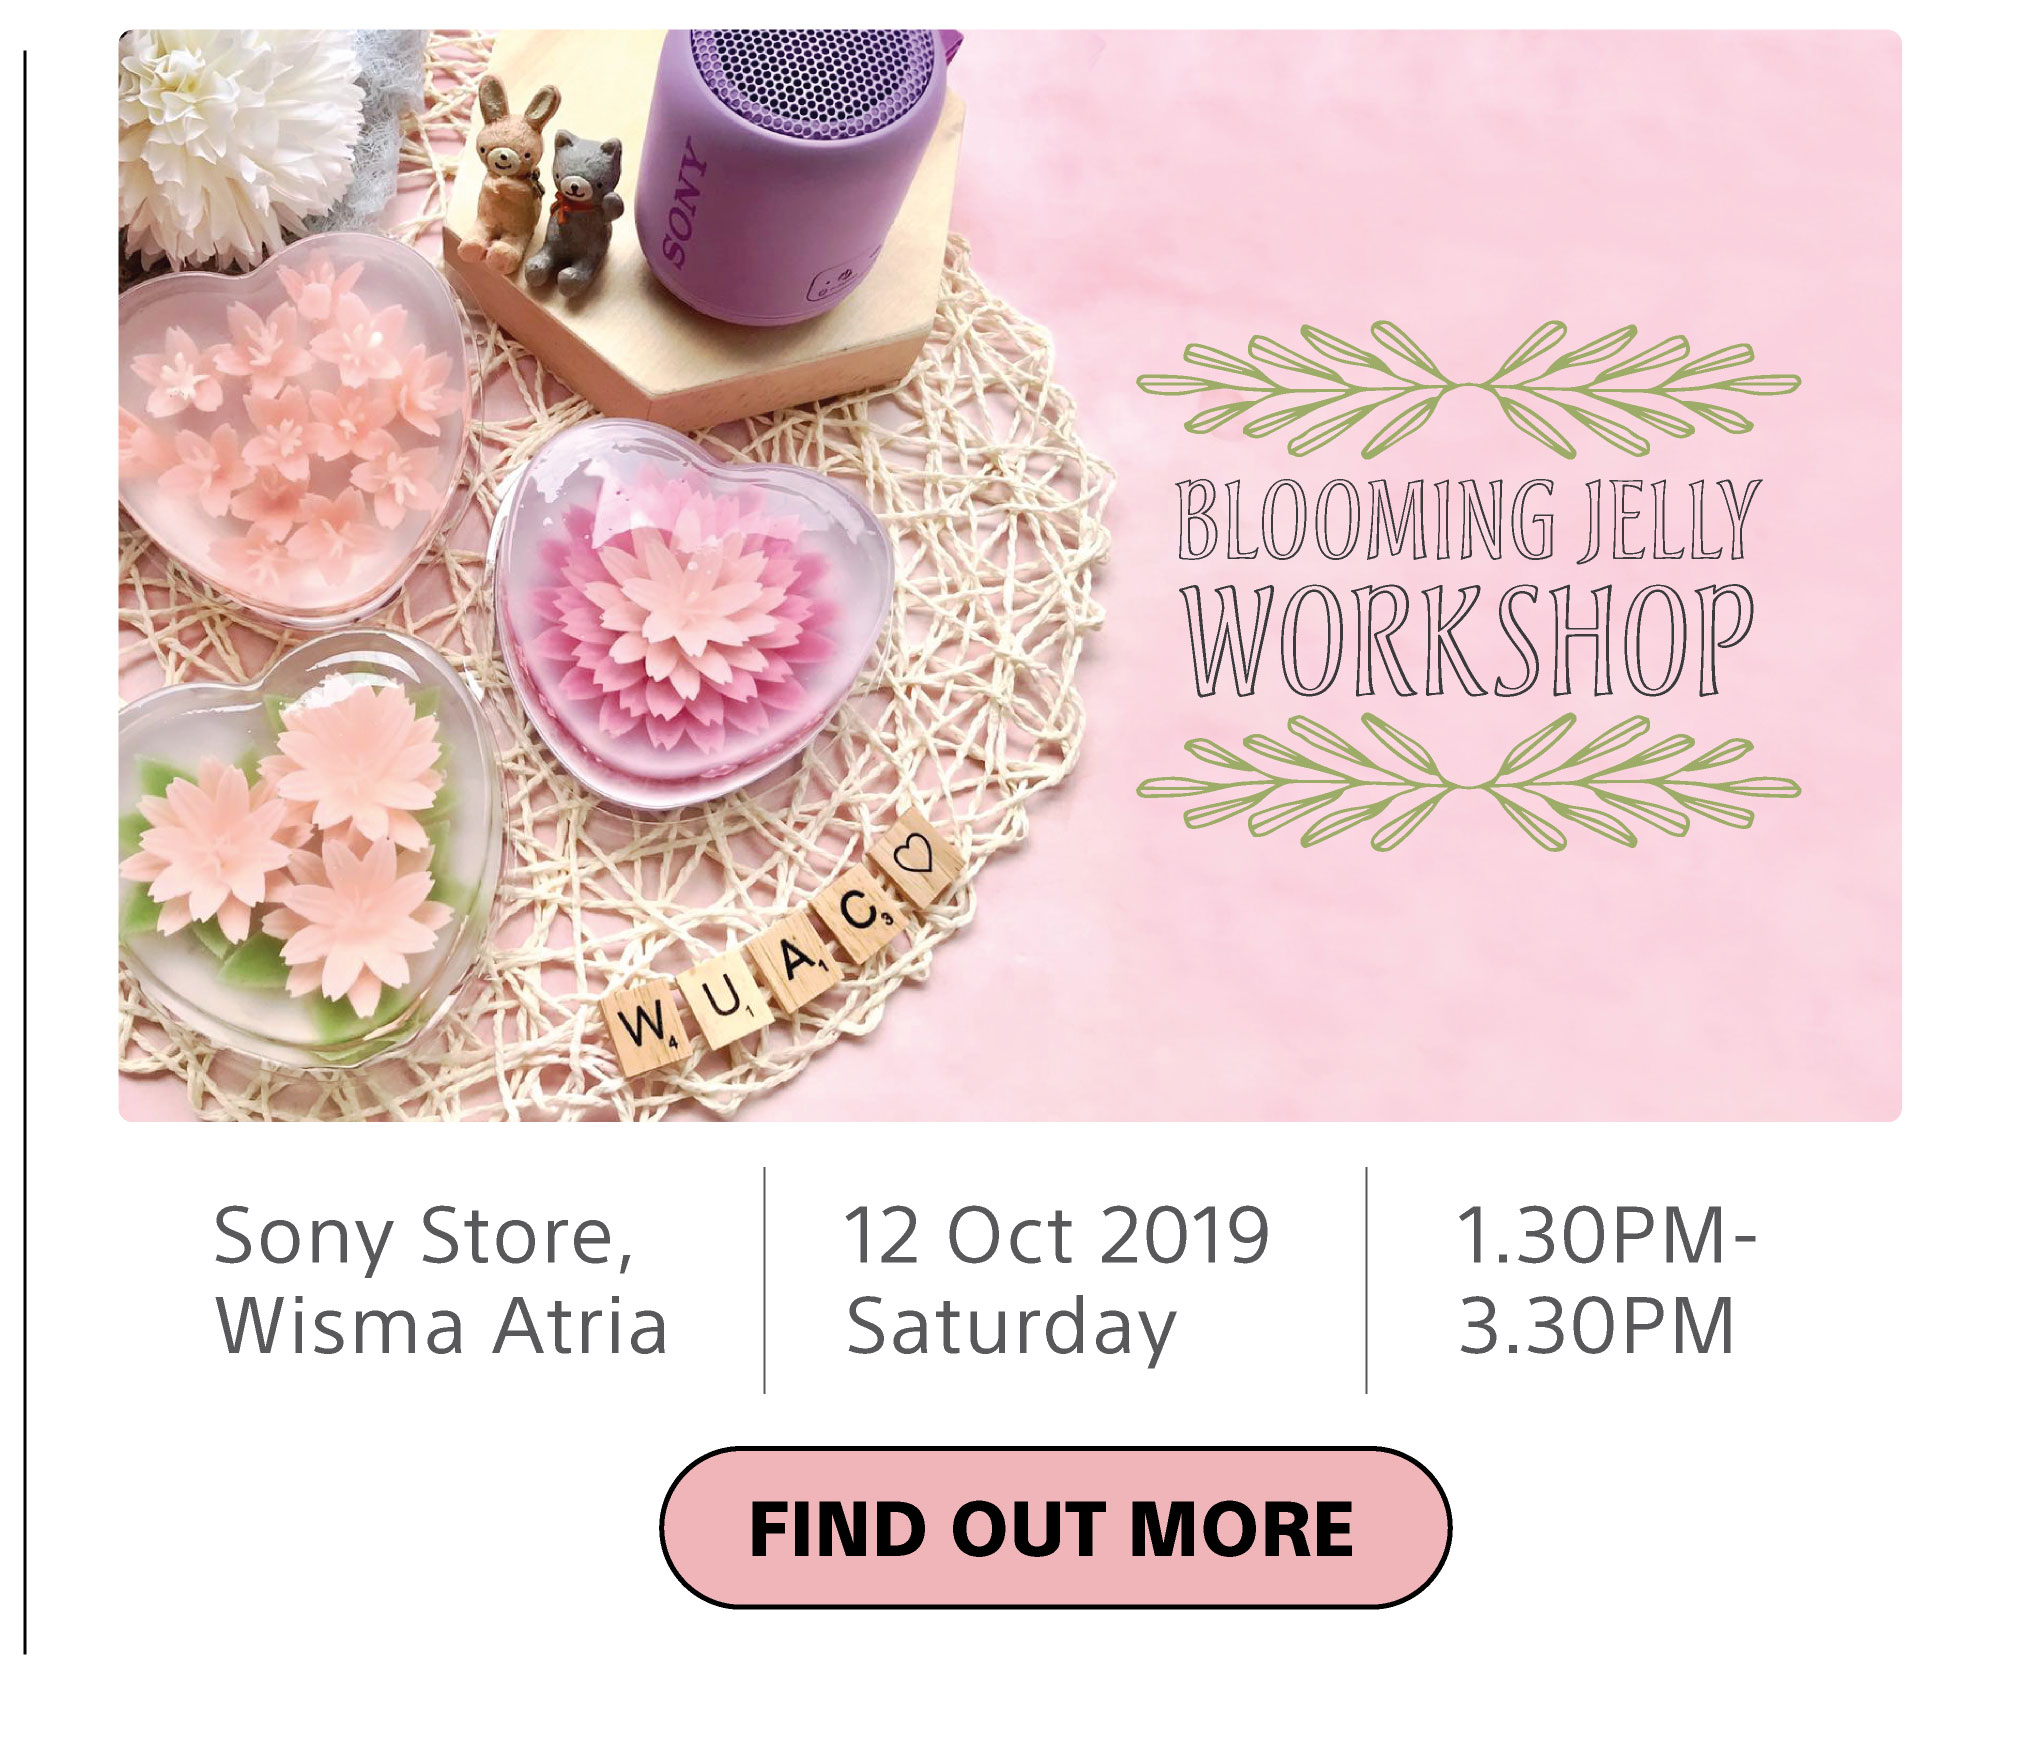 Join the Blooming Jelly Workshop on 12 Oct! Venue is at Sony Store, Wisma Atria